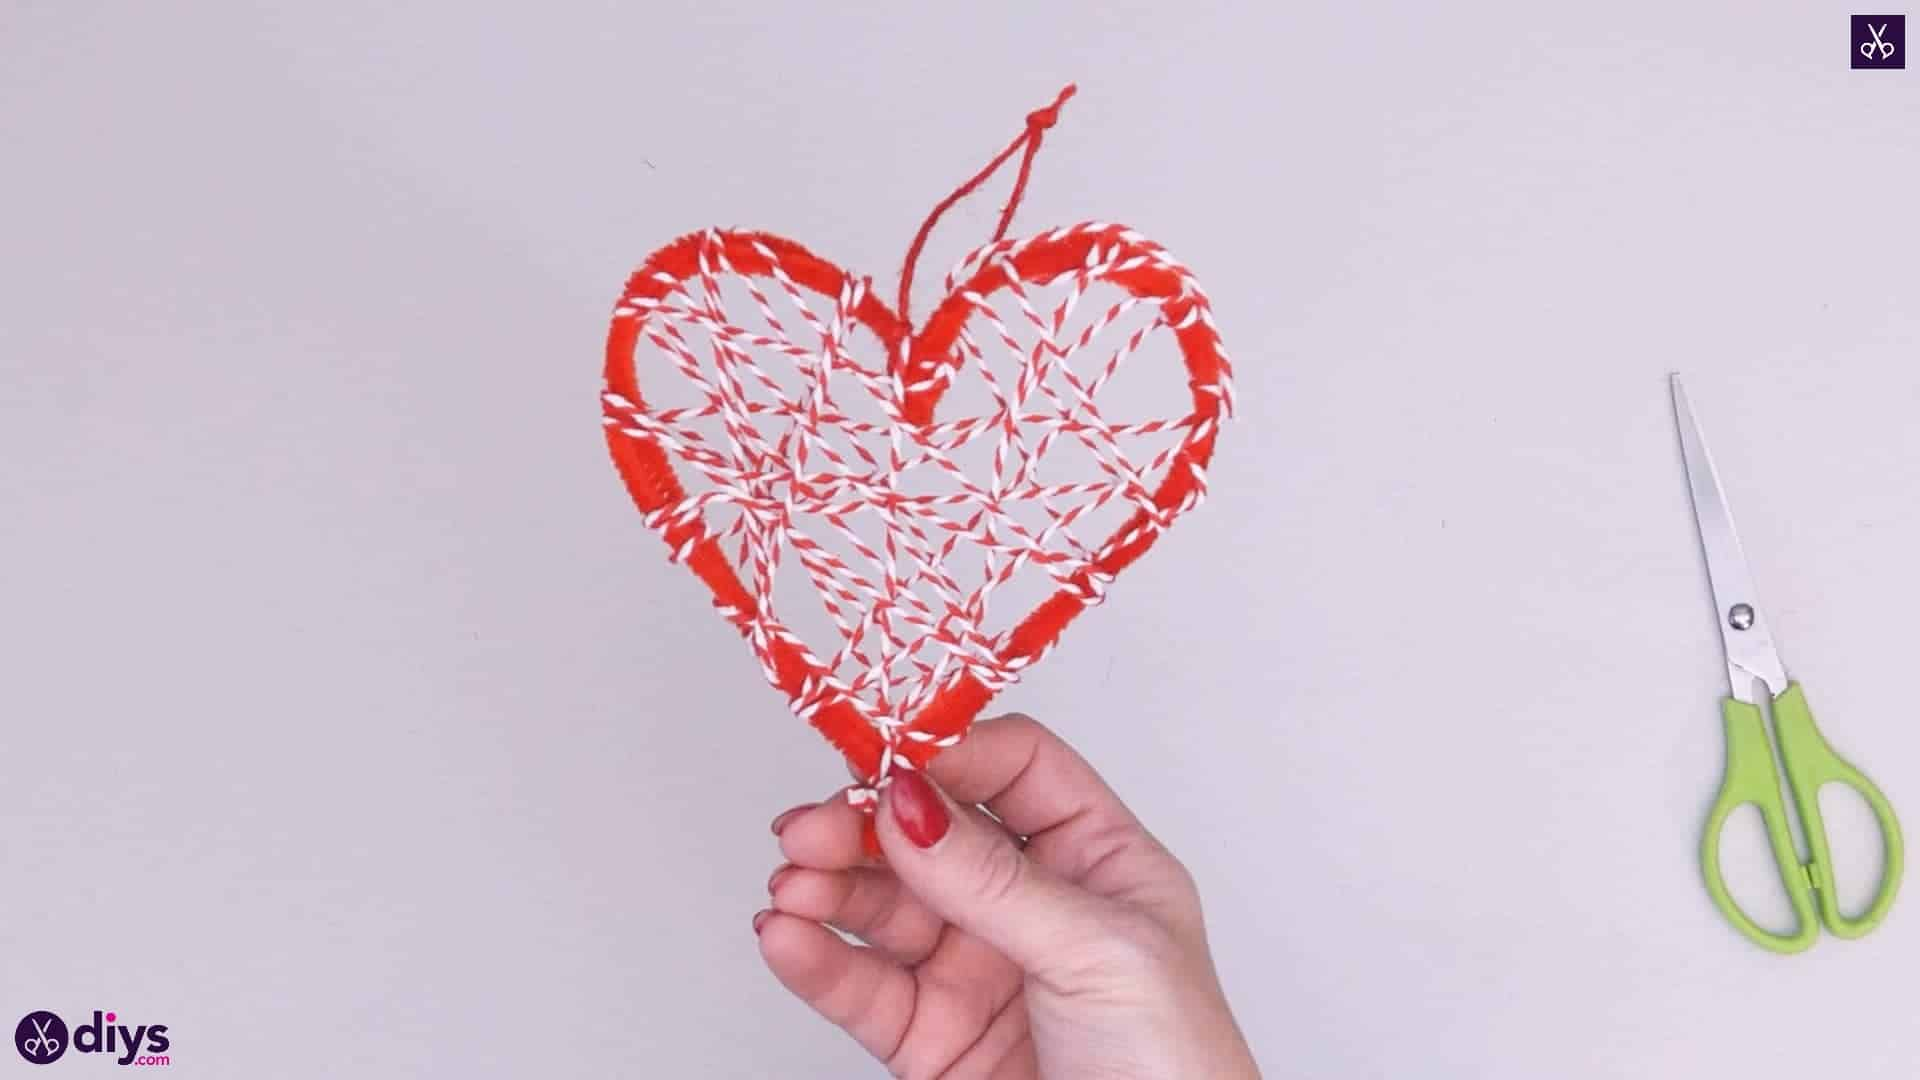 Diy hanging heart wall decor step 4k